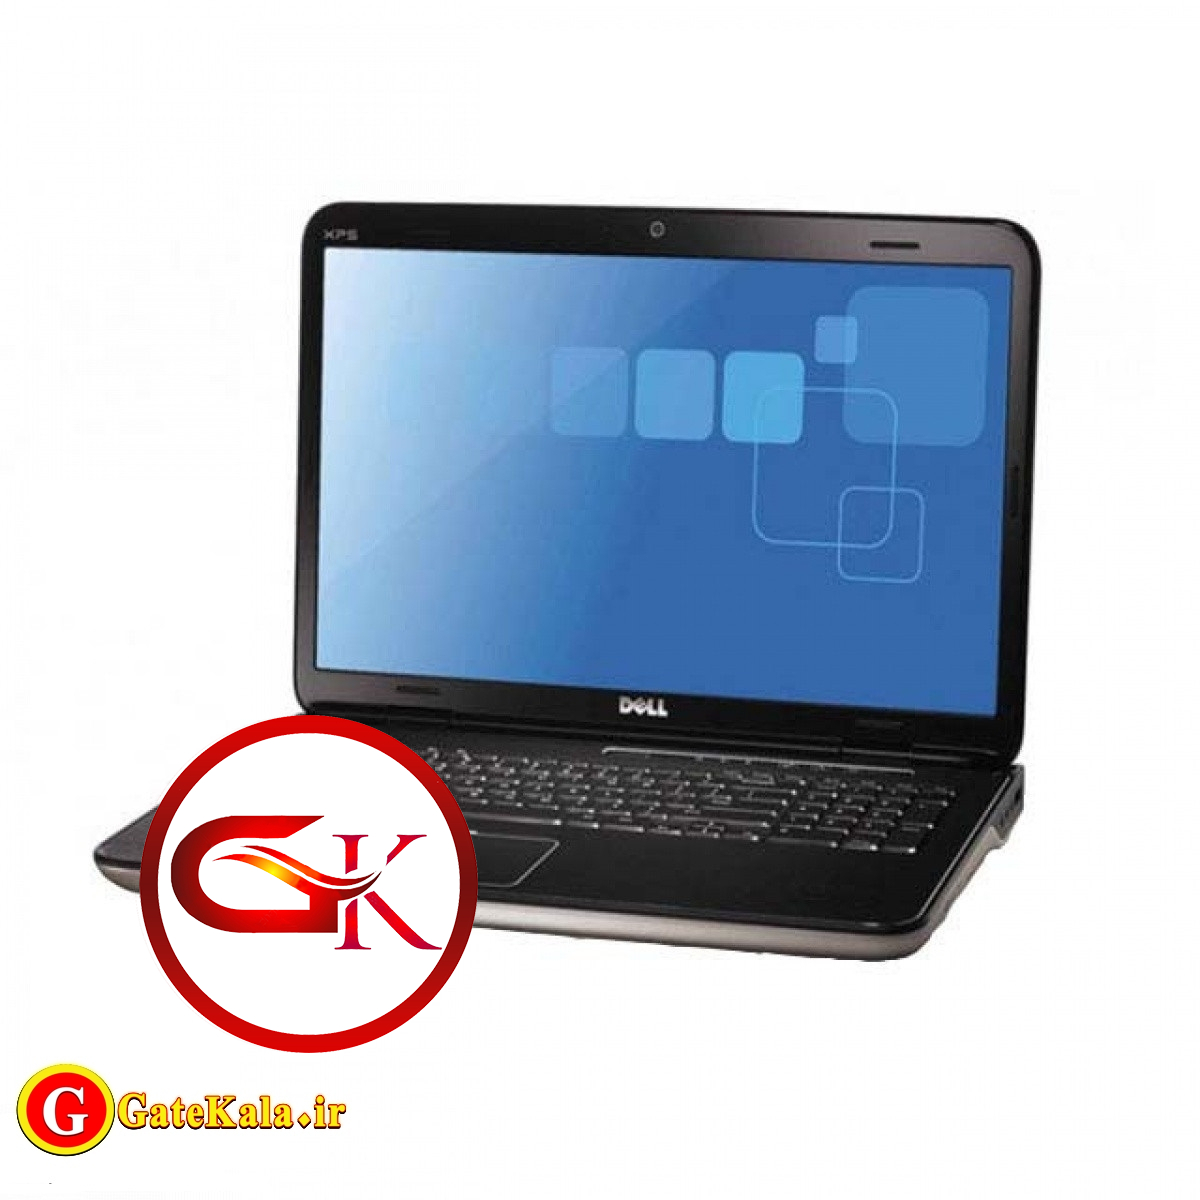 Dell Inspiron N5110 | CPU Core i3 650 | RAM 4G | 500G HDD | Intel HD